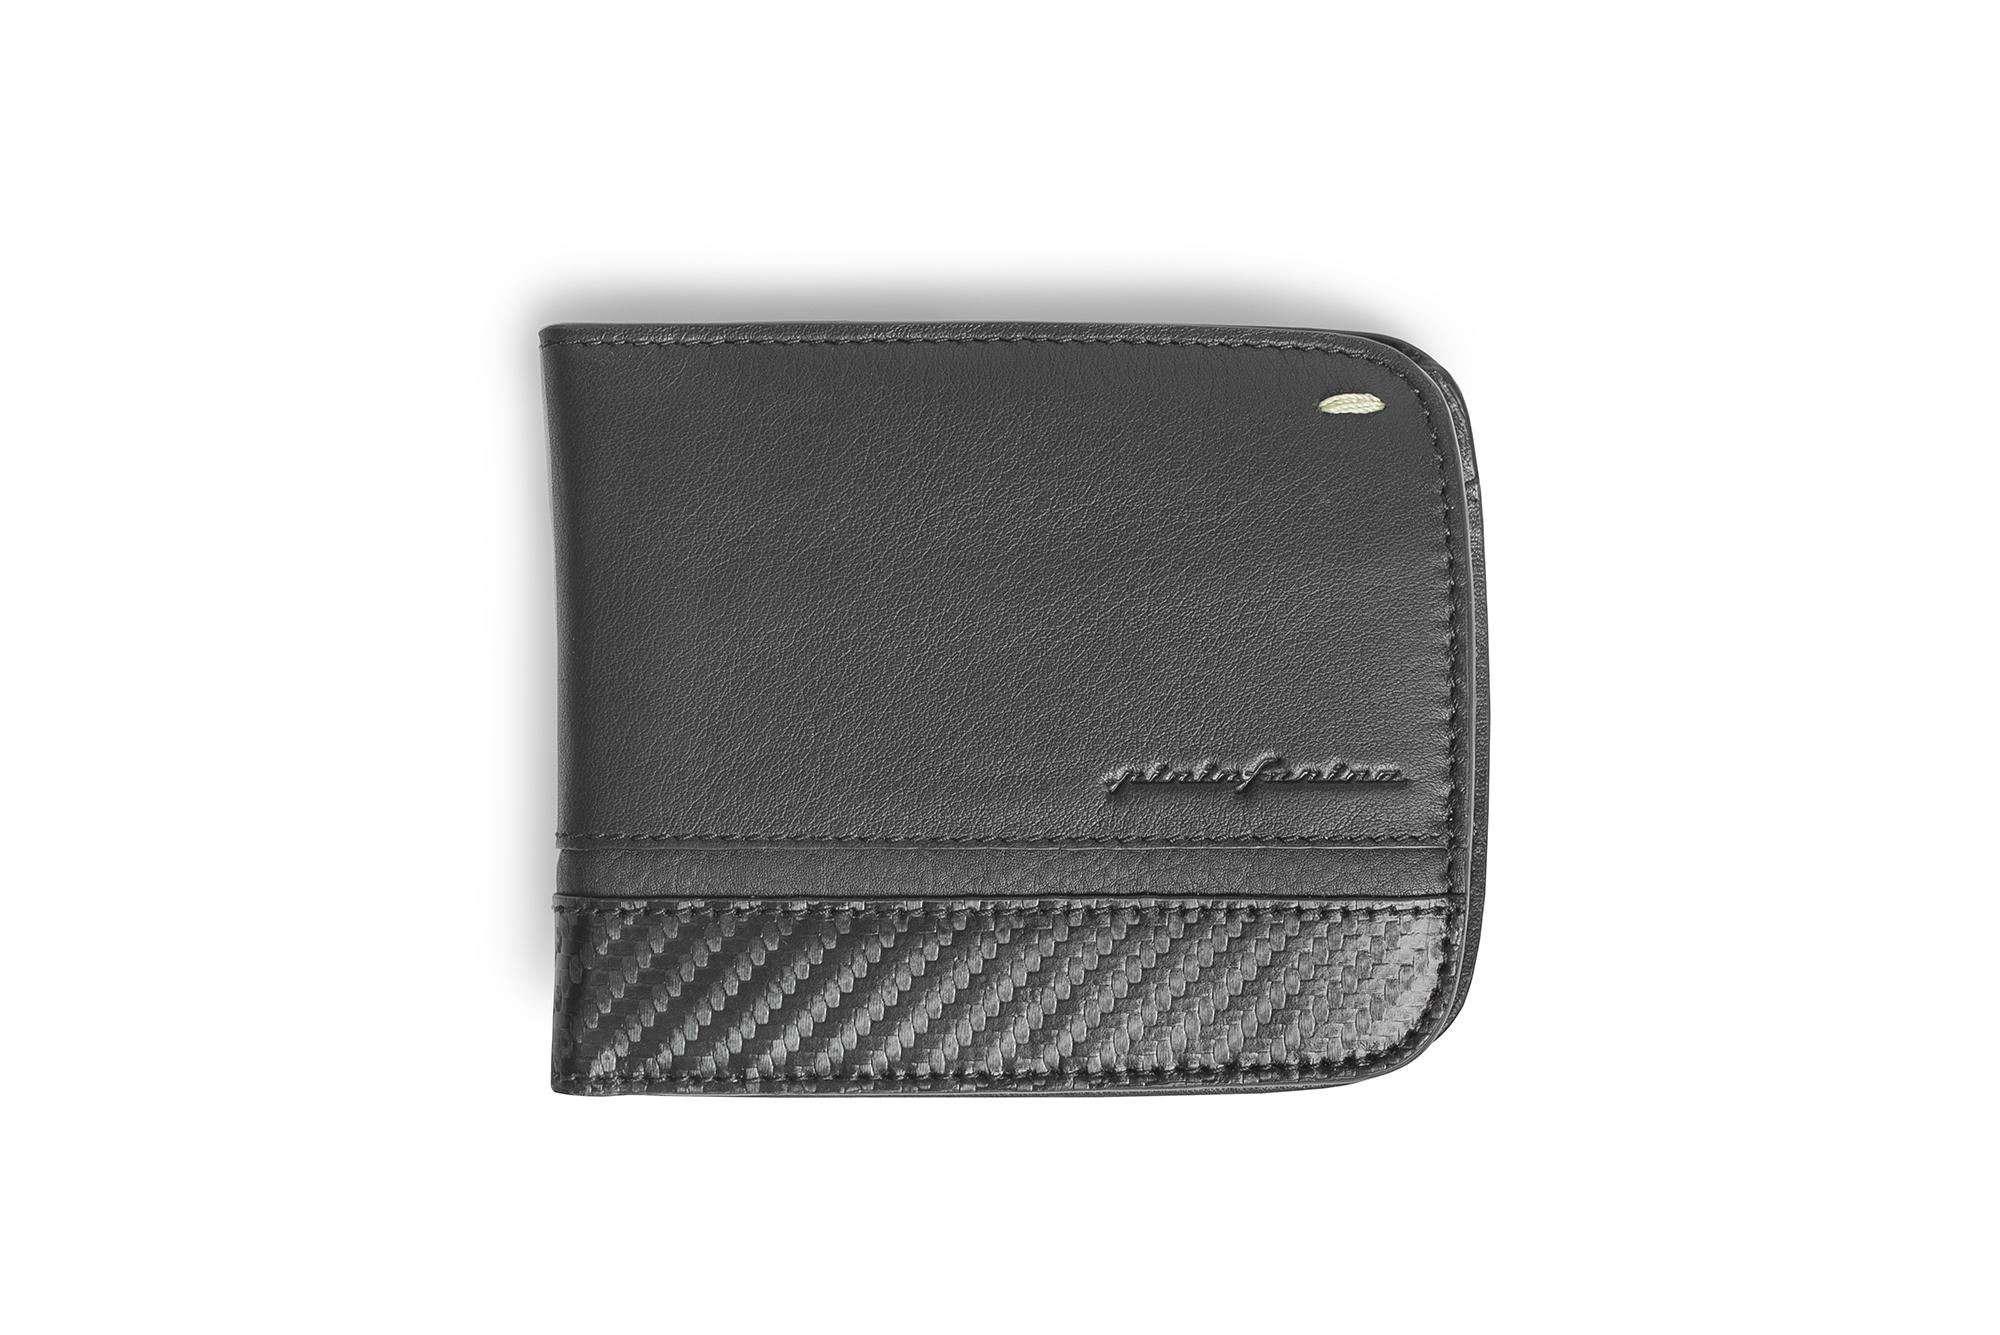 nuovo stile 7c305 8fc5e Wallet 6 Cards and Coins Folio by Pininfarina